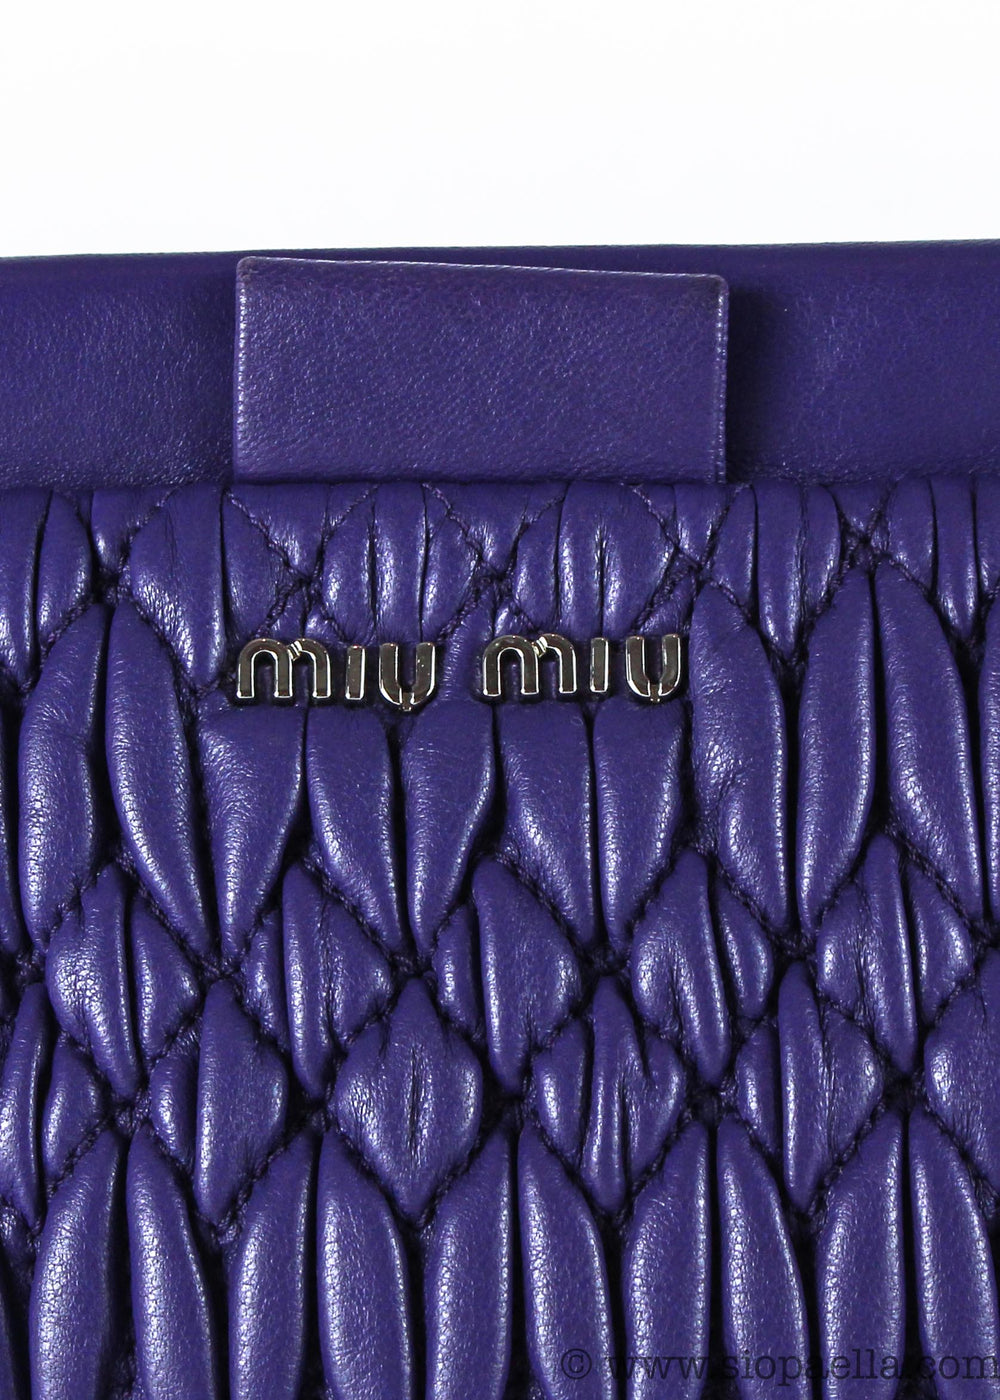 Miu Miu Purple Matelassé Gem Embellished Crossbody - Siopaella Designer Exchange